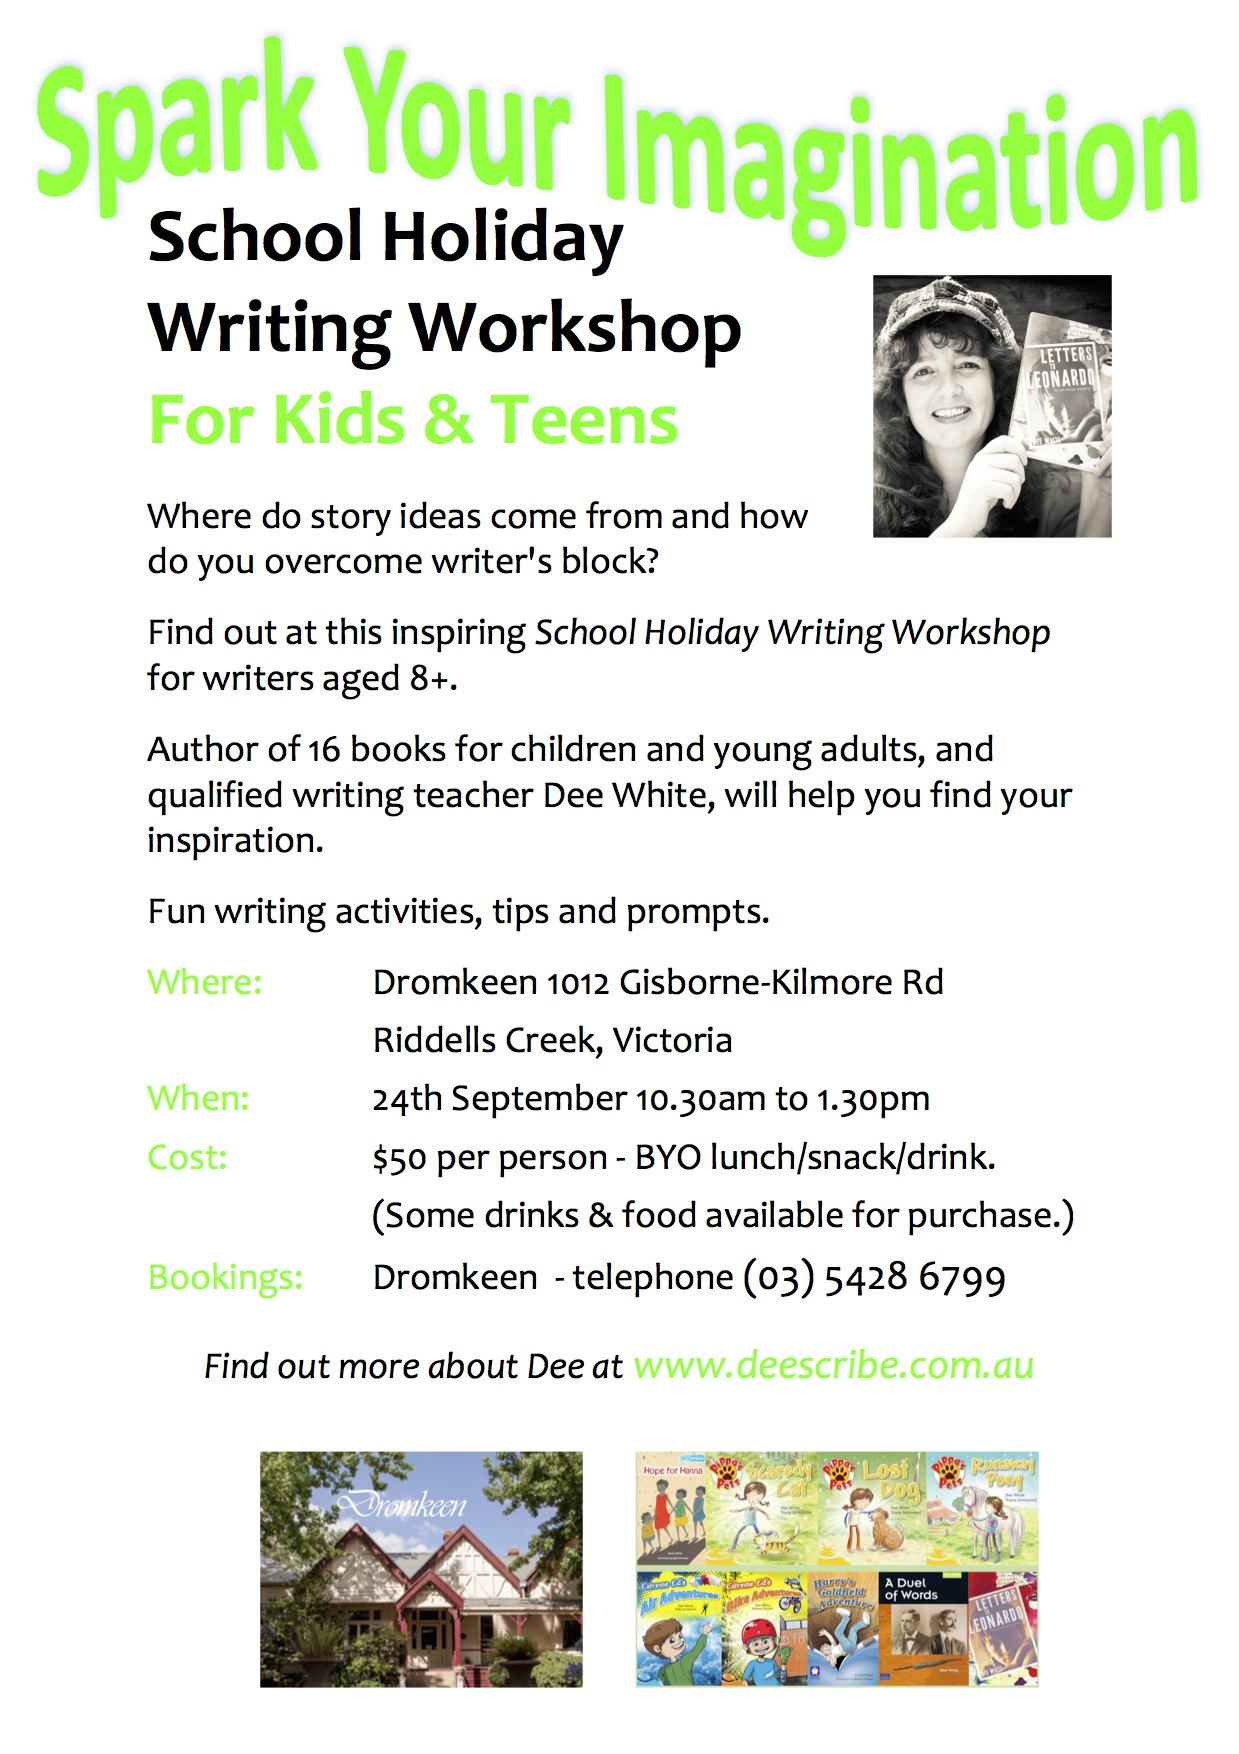 Dromkeen workshop flier